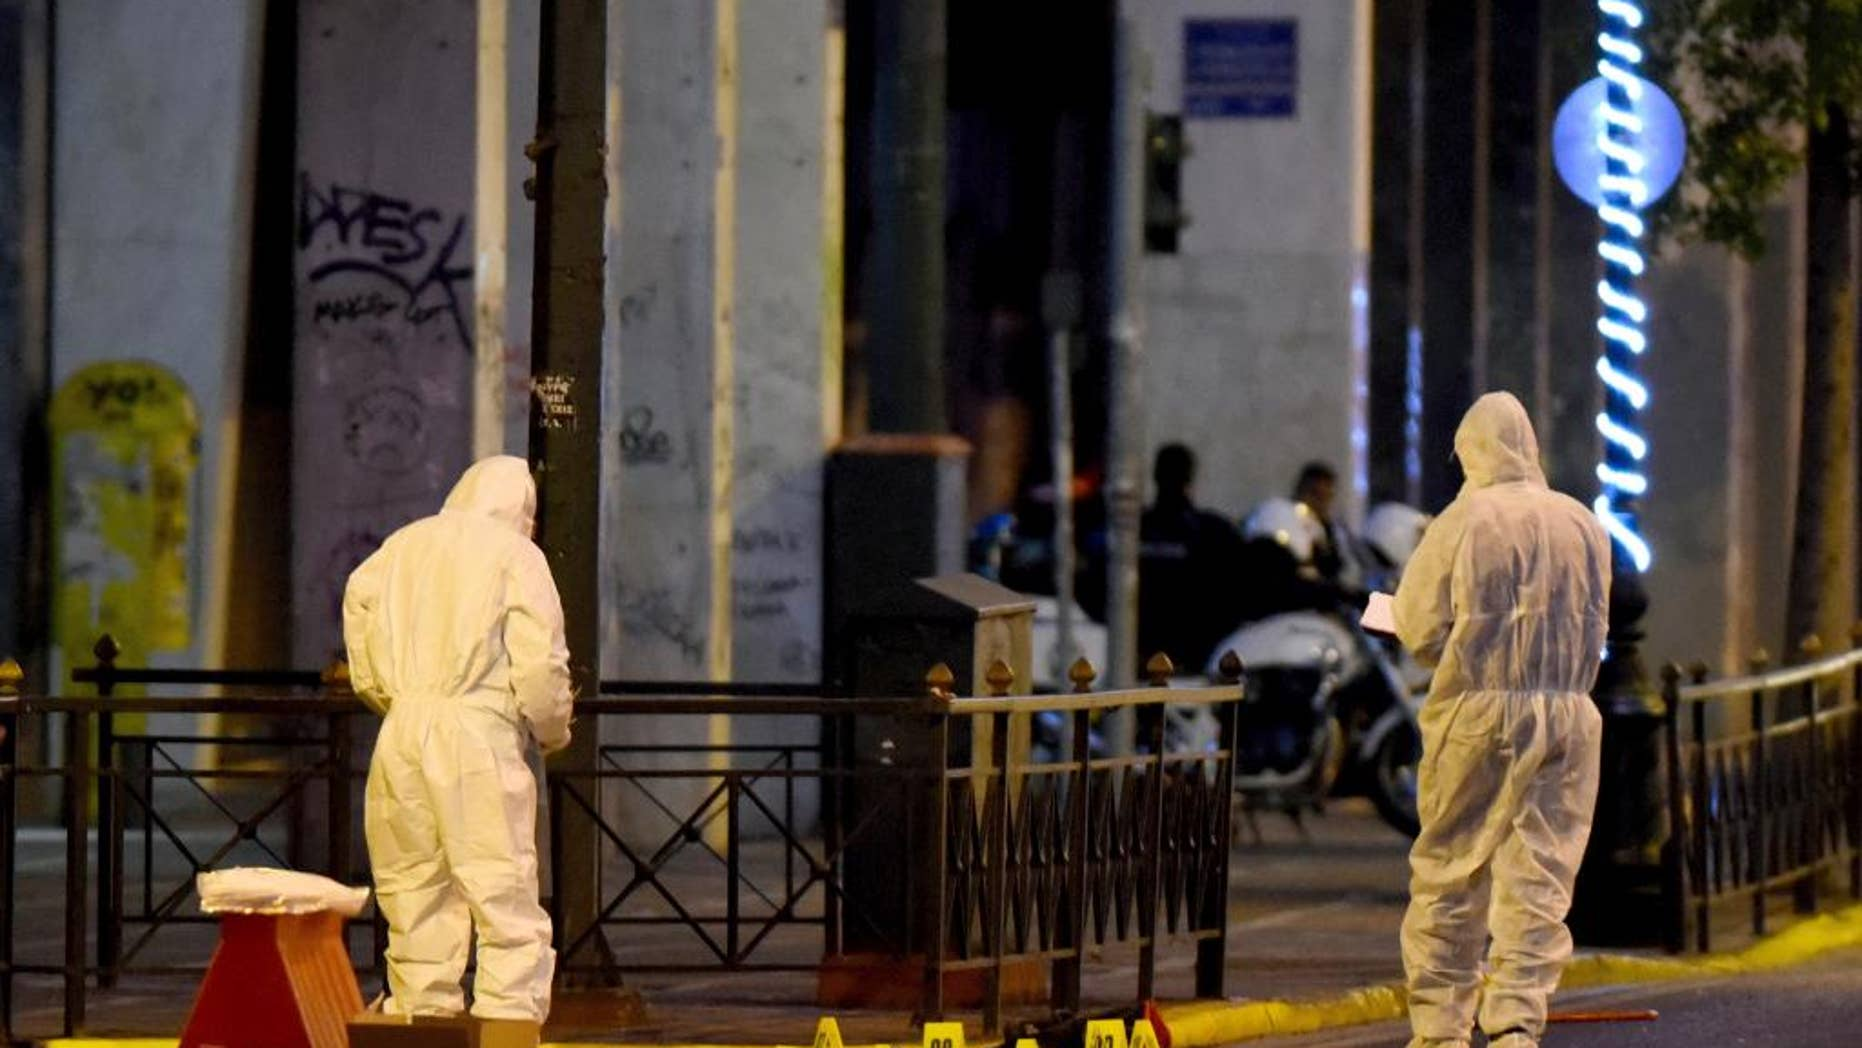 Members of the bomb squad search for evidence outside Labor Ministry in Athens early Monday, Dec. 12, 2016. Greek authorities have destroyed a time bomb planted overnight outside the Labor Ministry on a major thoroughfare in central Athens, after a warning telephone call was made to a newspaper, police said Monday. No injuries or damage were reported. (Antonis Nikolopoulos/Eurokinissi via AP)